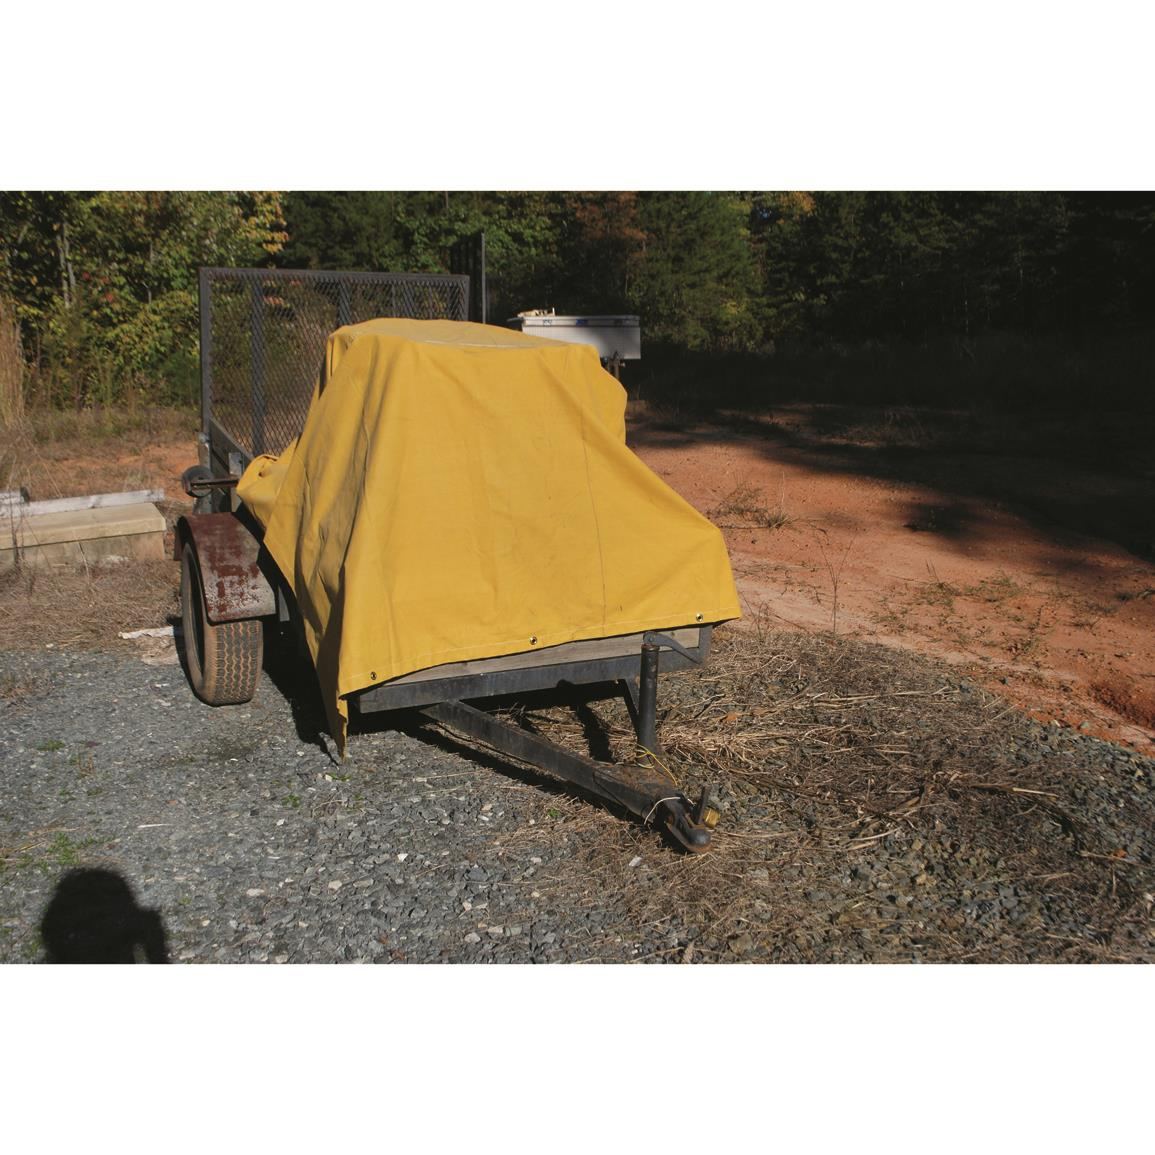 Great for covering firewood, farm equipment, ATVs, lawn furniture and more